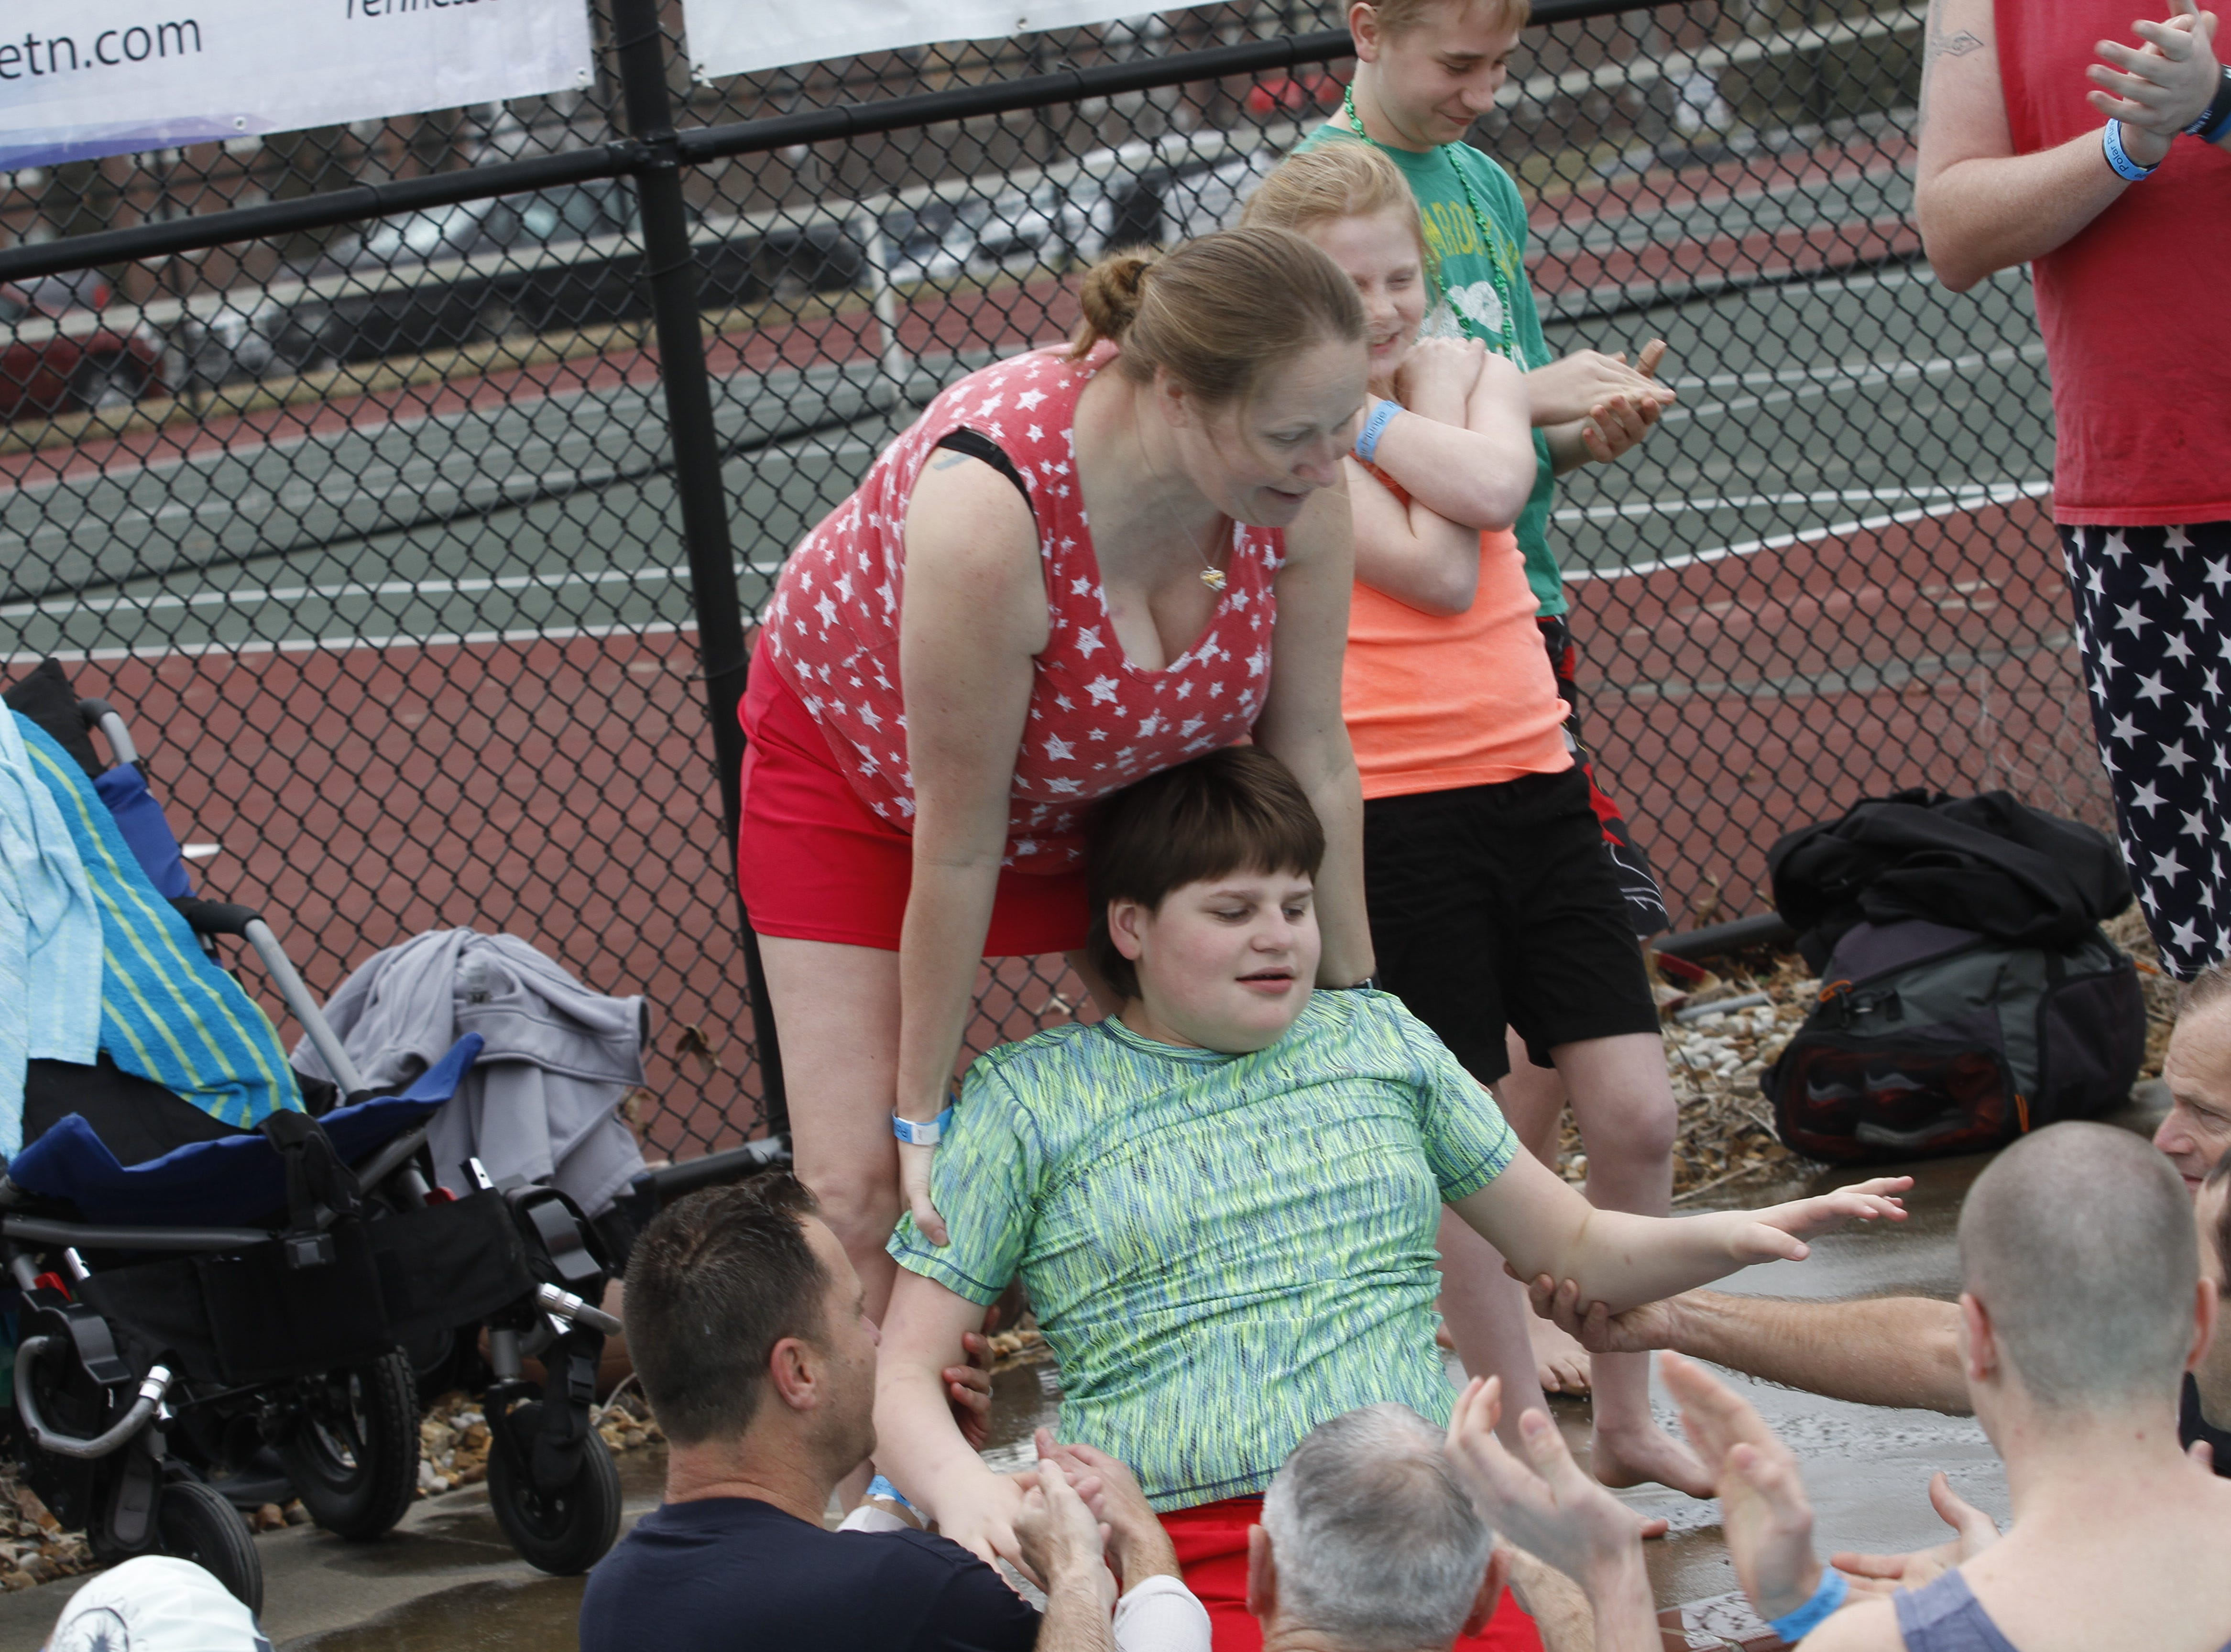 Over $10,000 raised at Special Olympics Polar Plunge